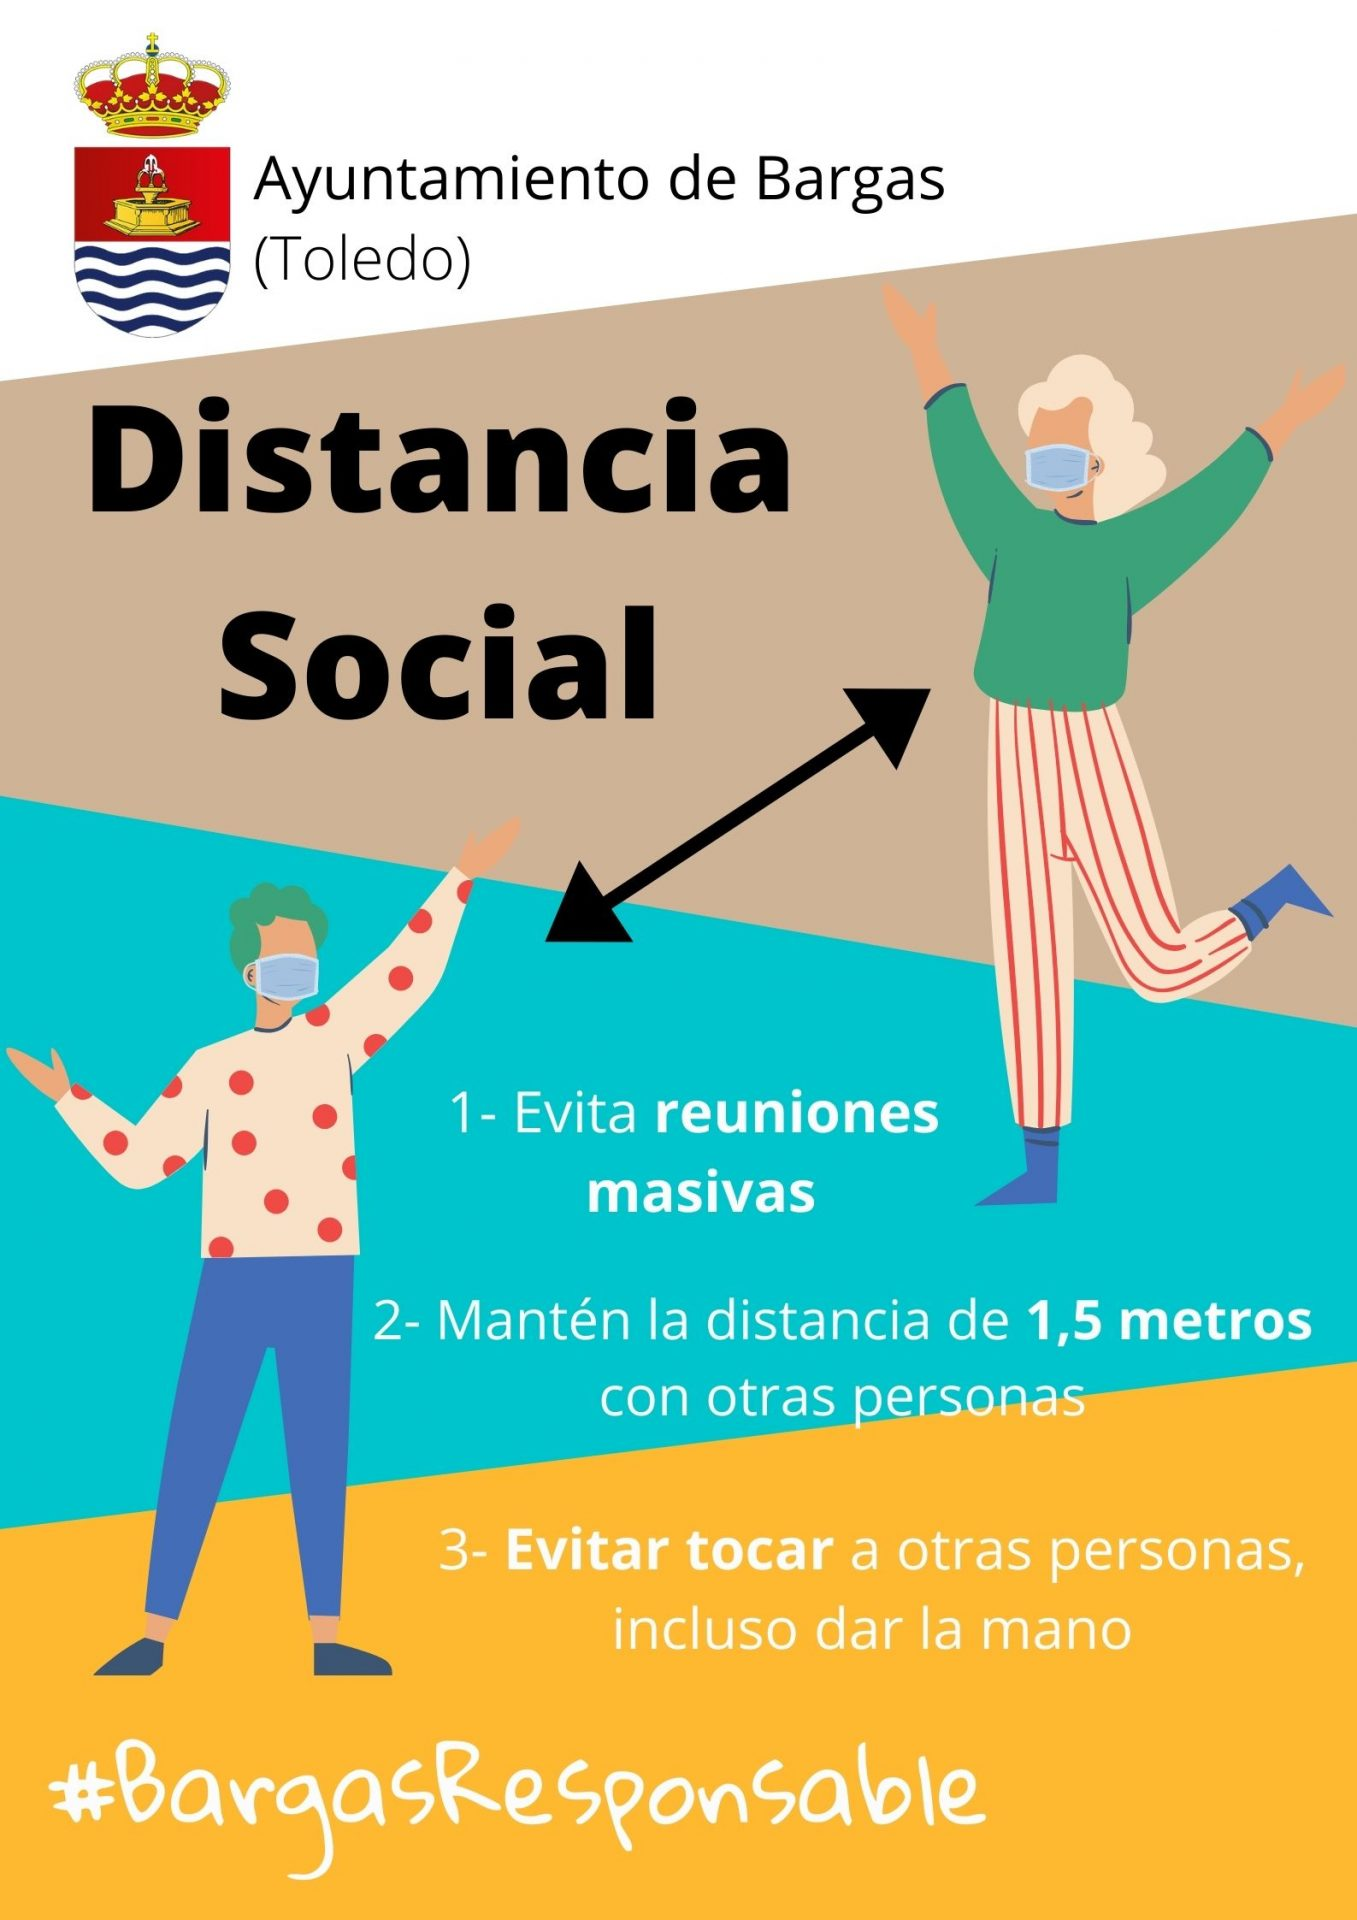 distancia-social-bargasresponsable